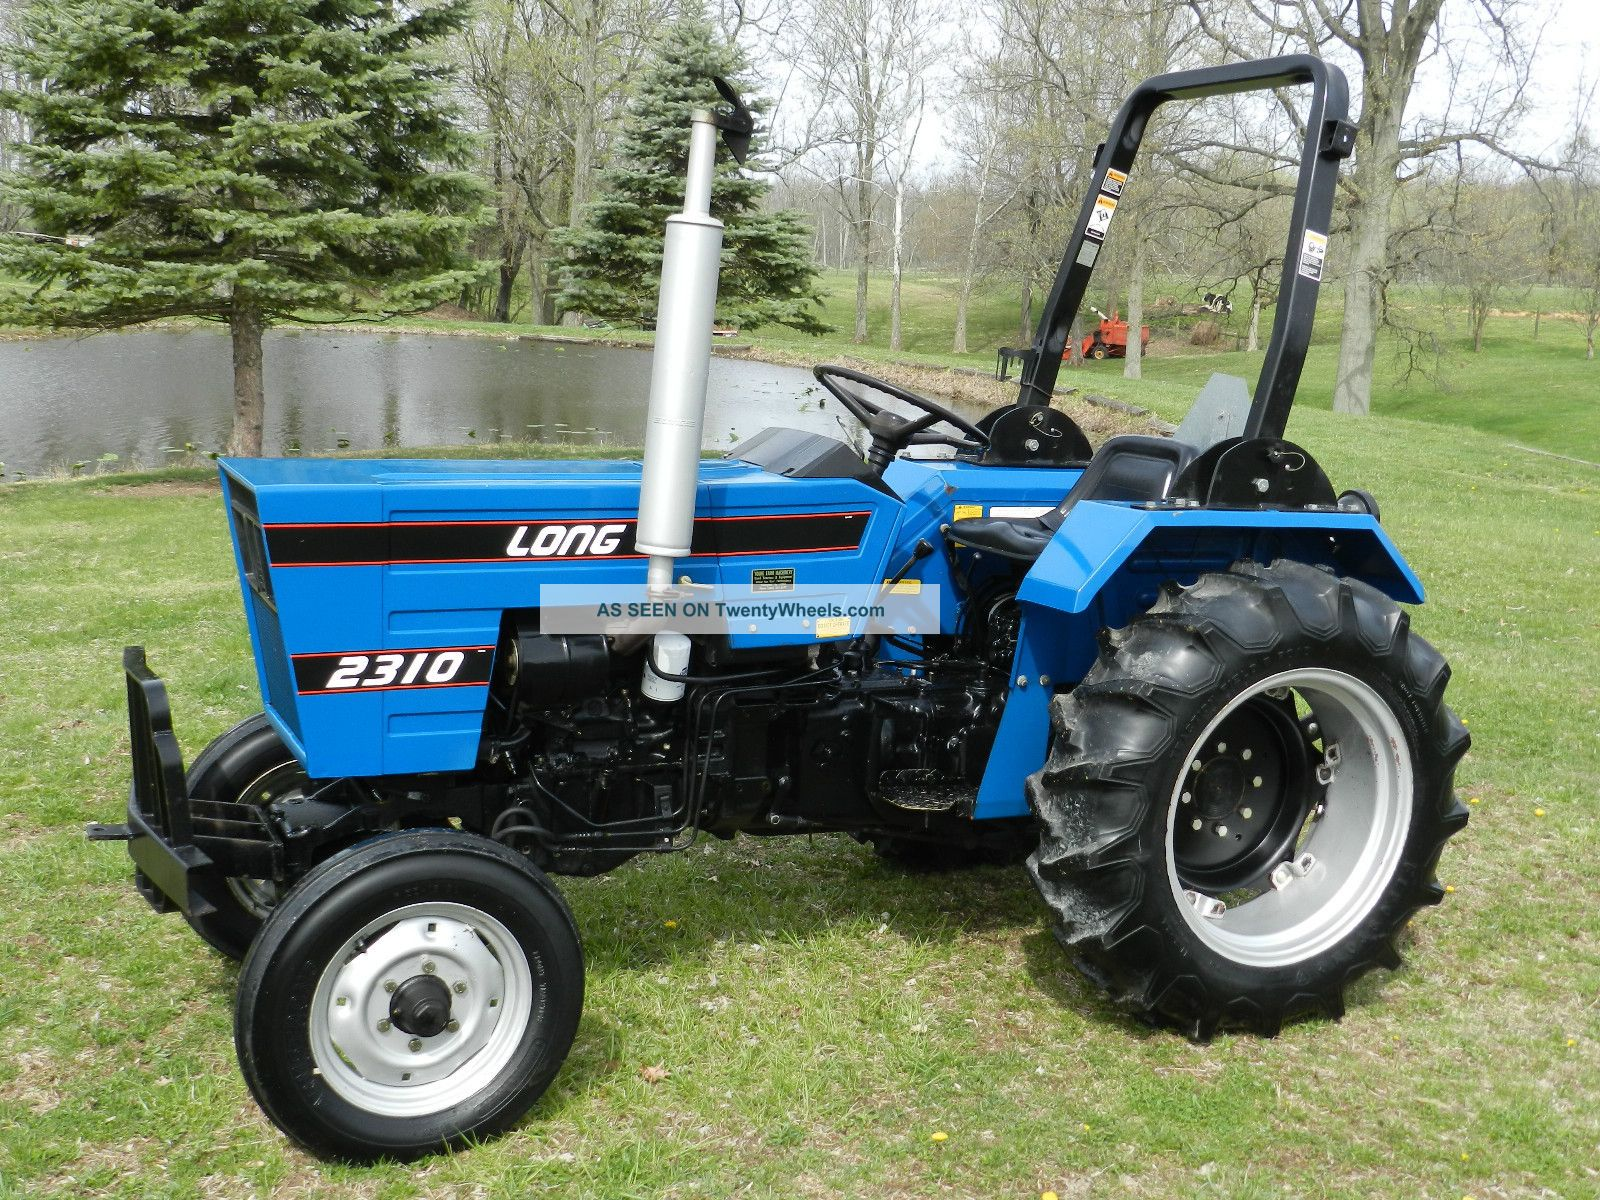 Long 2310 Compact Tractor - Diesel - One Owner Tractors photo